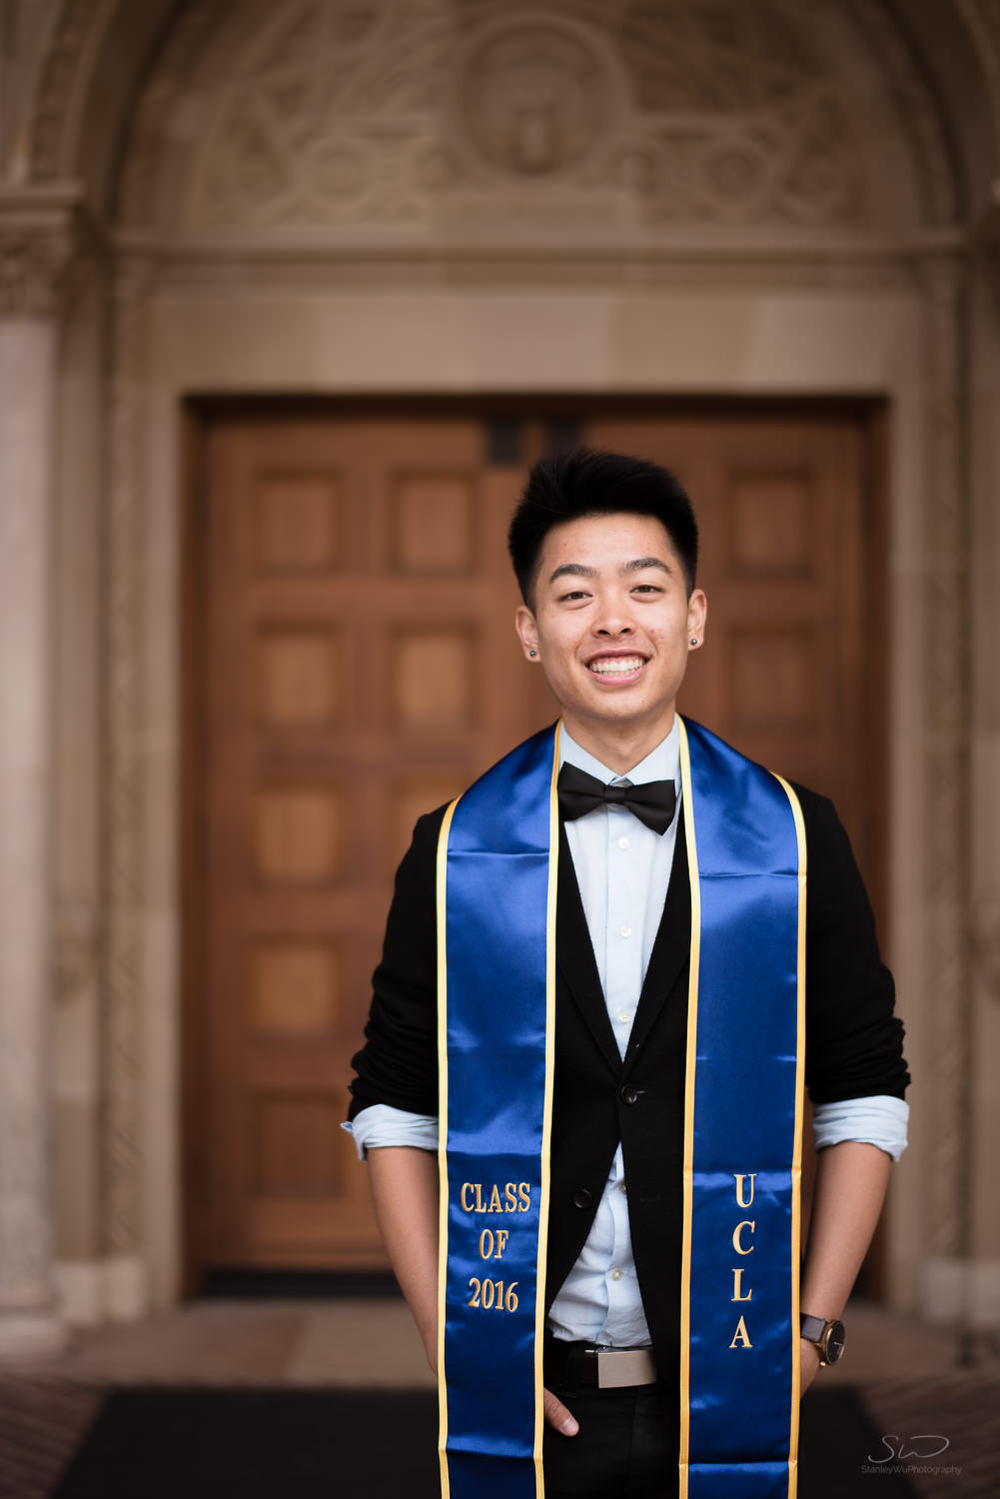 ucla-senior-grad-portraits-13.jpg